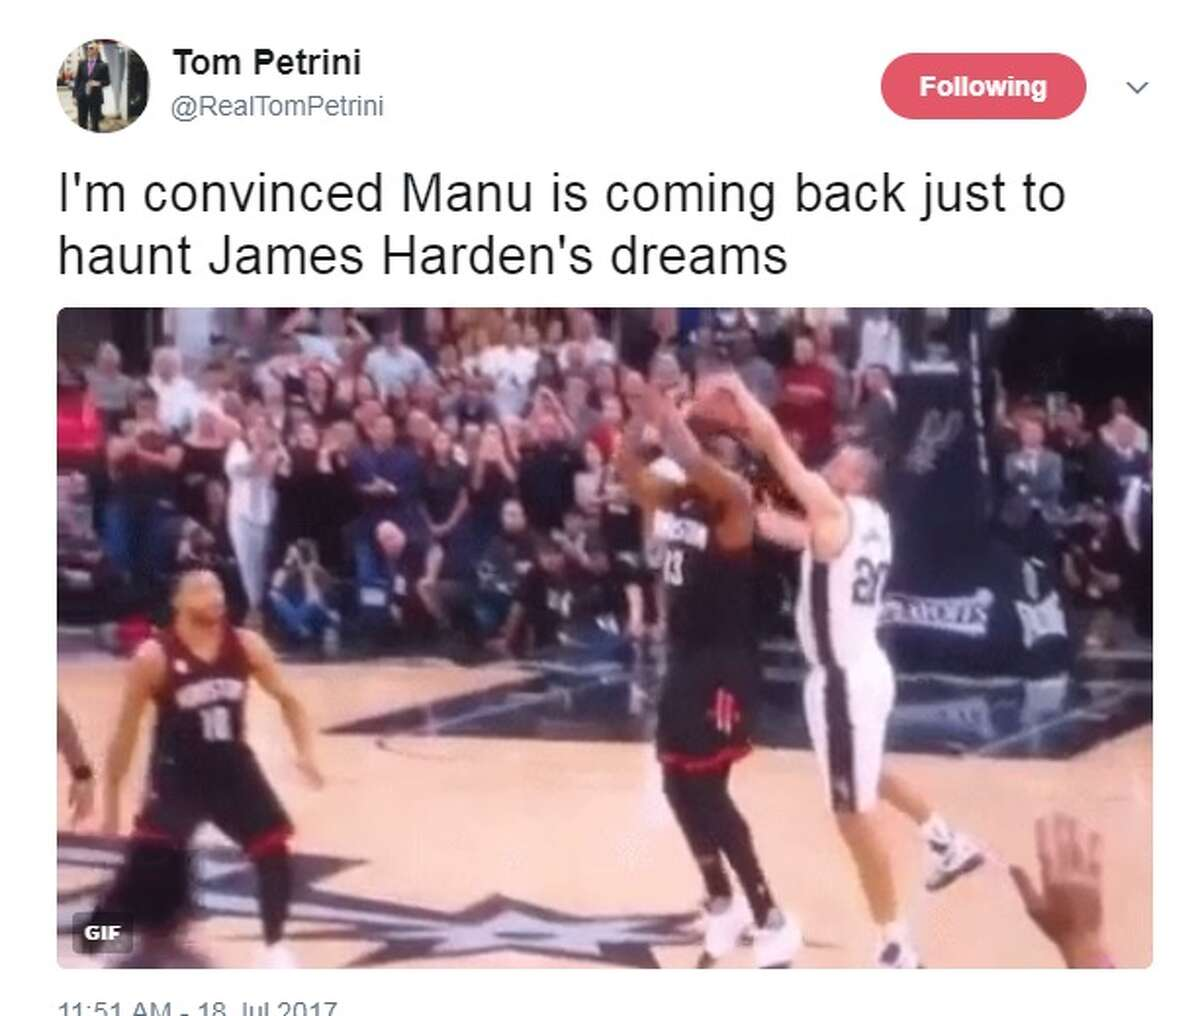 @RealTomPetrini: I'm convinced Manu is coming back just to haunt James Harden's dreams